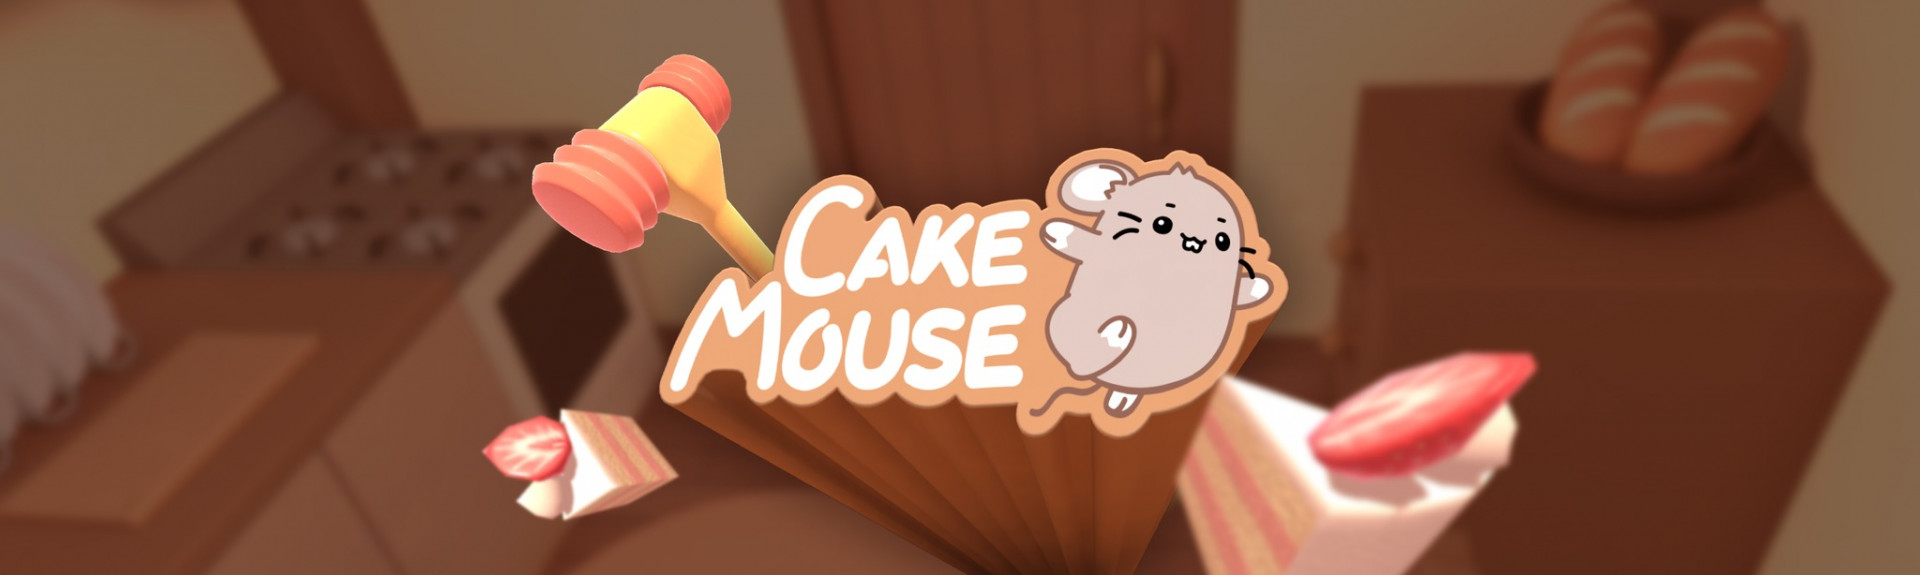 Cake Mouse